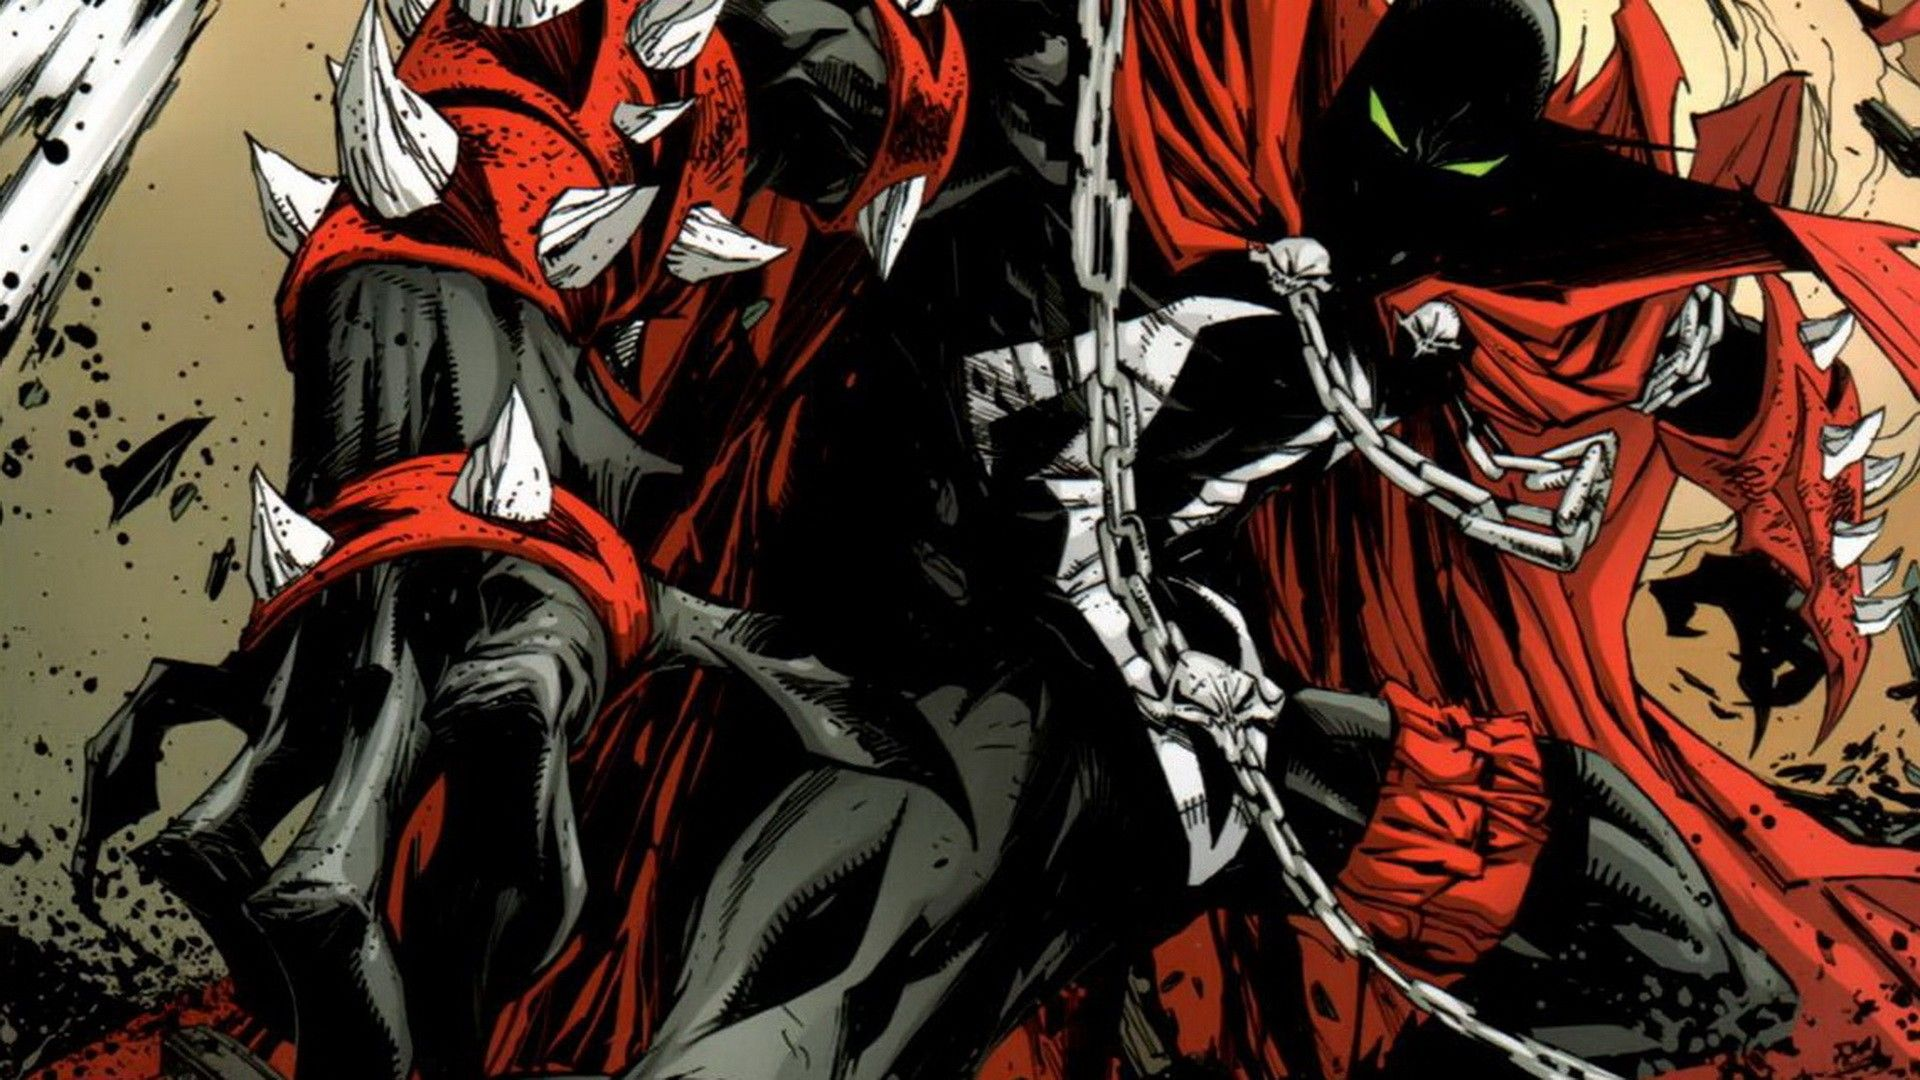 Todd McFarlane Has Completed His SPAWN Movie Script And Hopes To Make A Big Announcement At Comic Con GeekTyrant